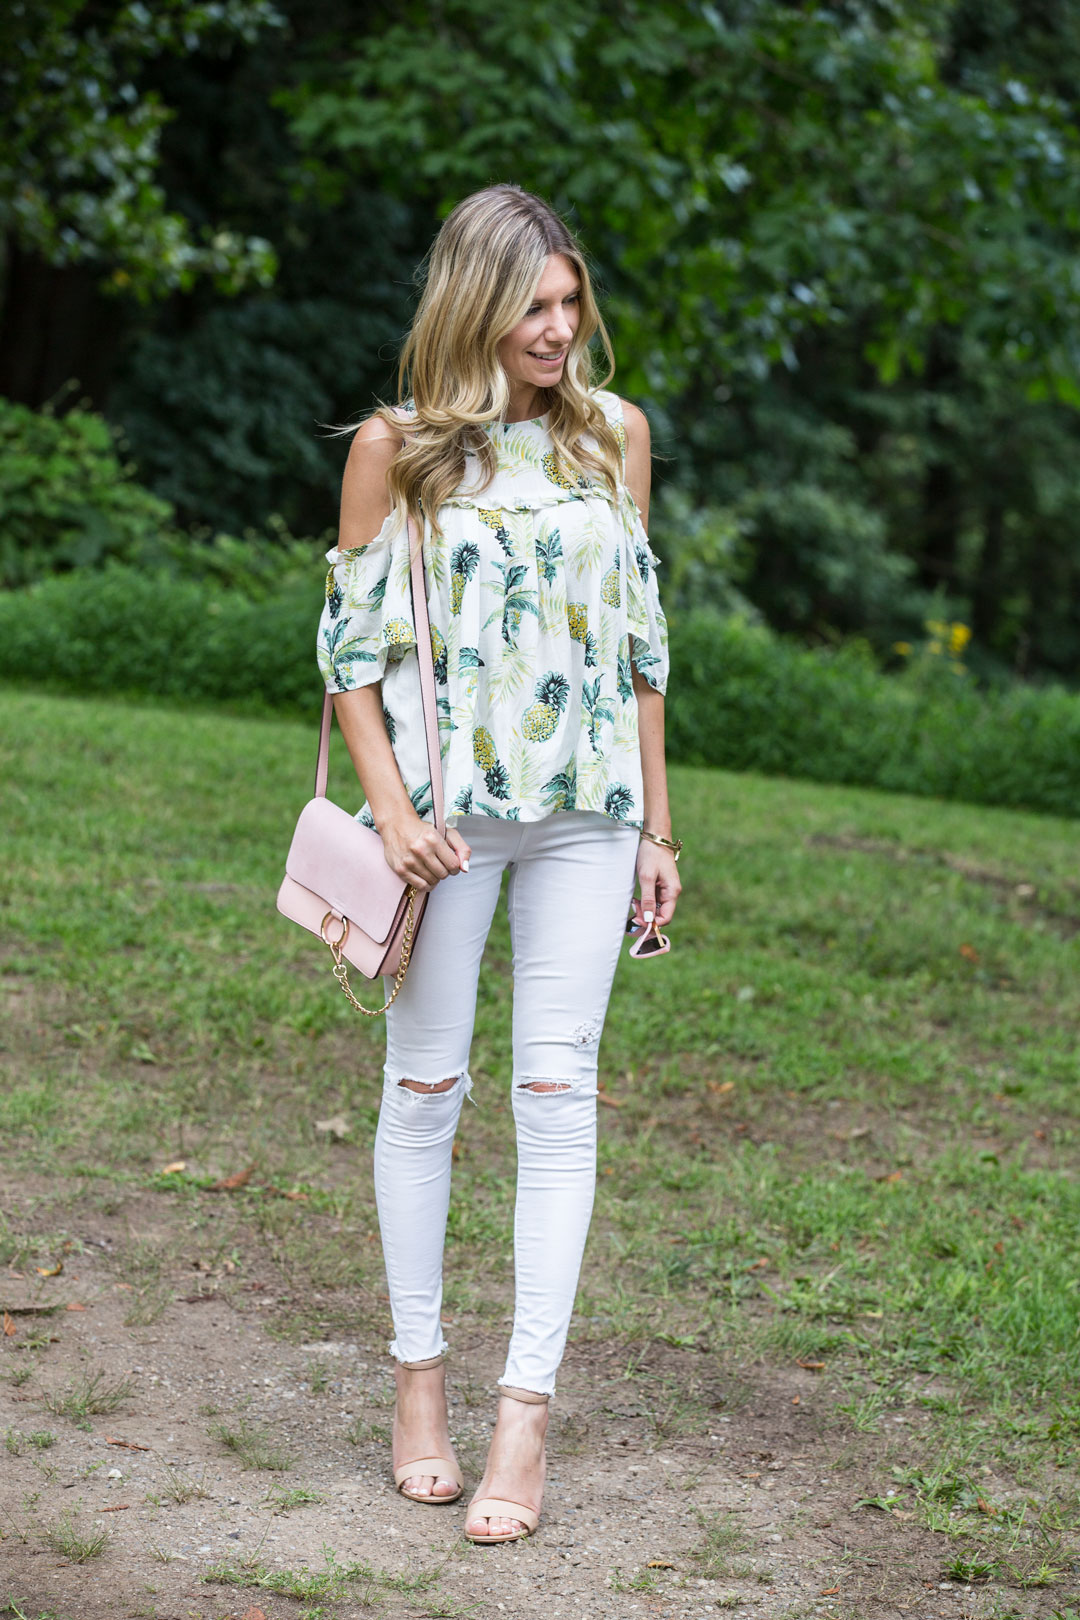 light and bright outfit, perfect for summer